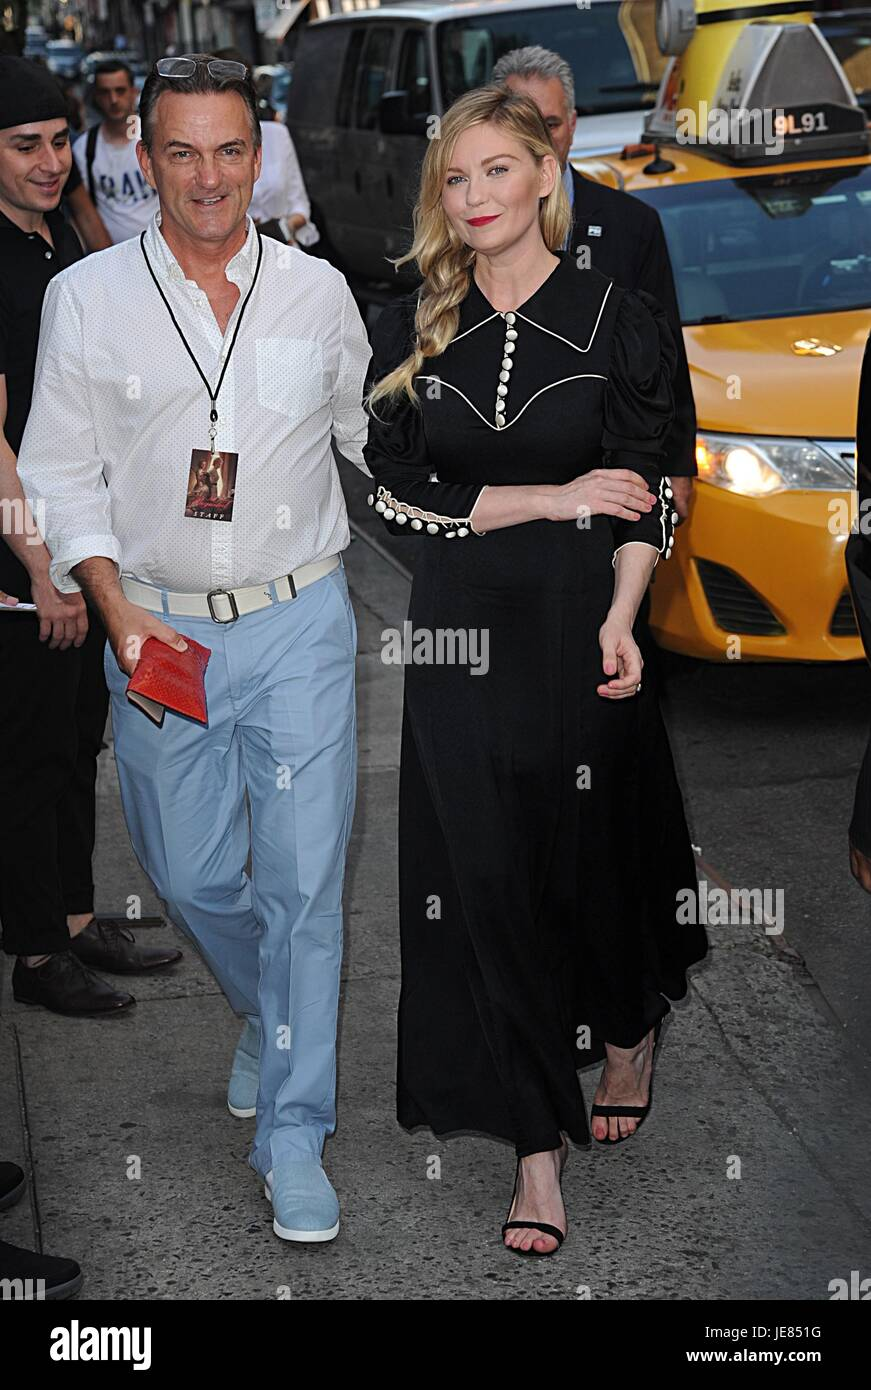 New York, NY, USA. 22nd June, 2017. Publicist, Stephen Huvane, Kirsten Dunst out and about for Celebrity Candids - Stock Image